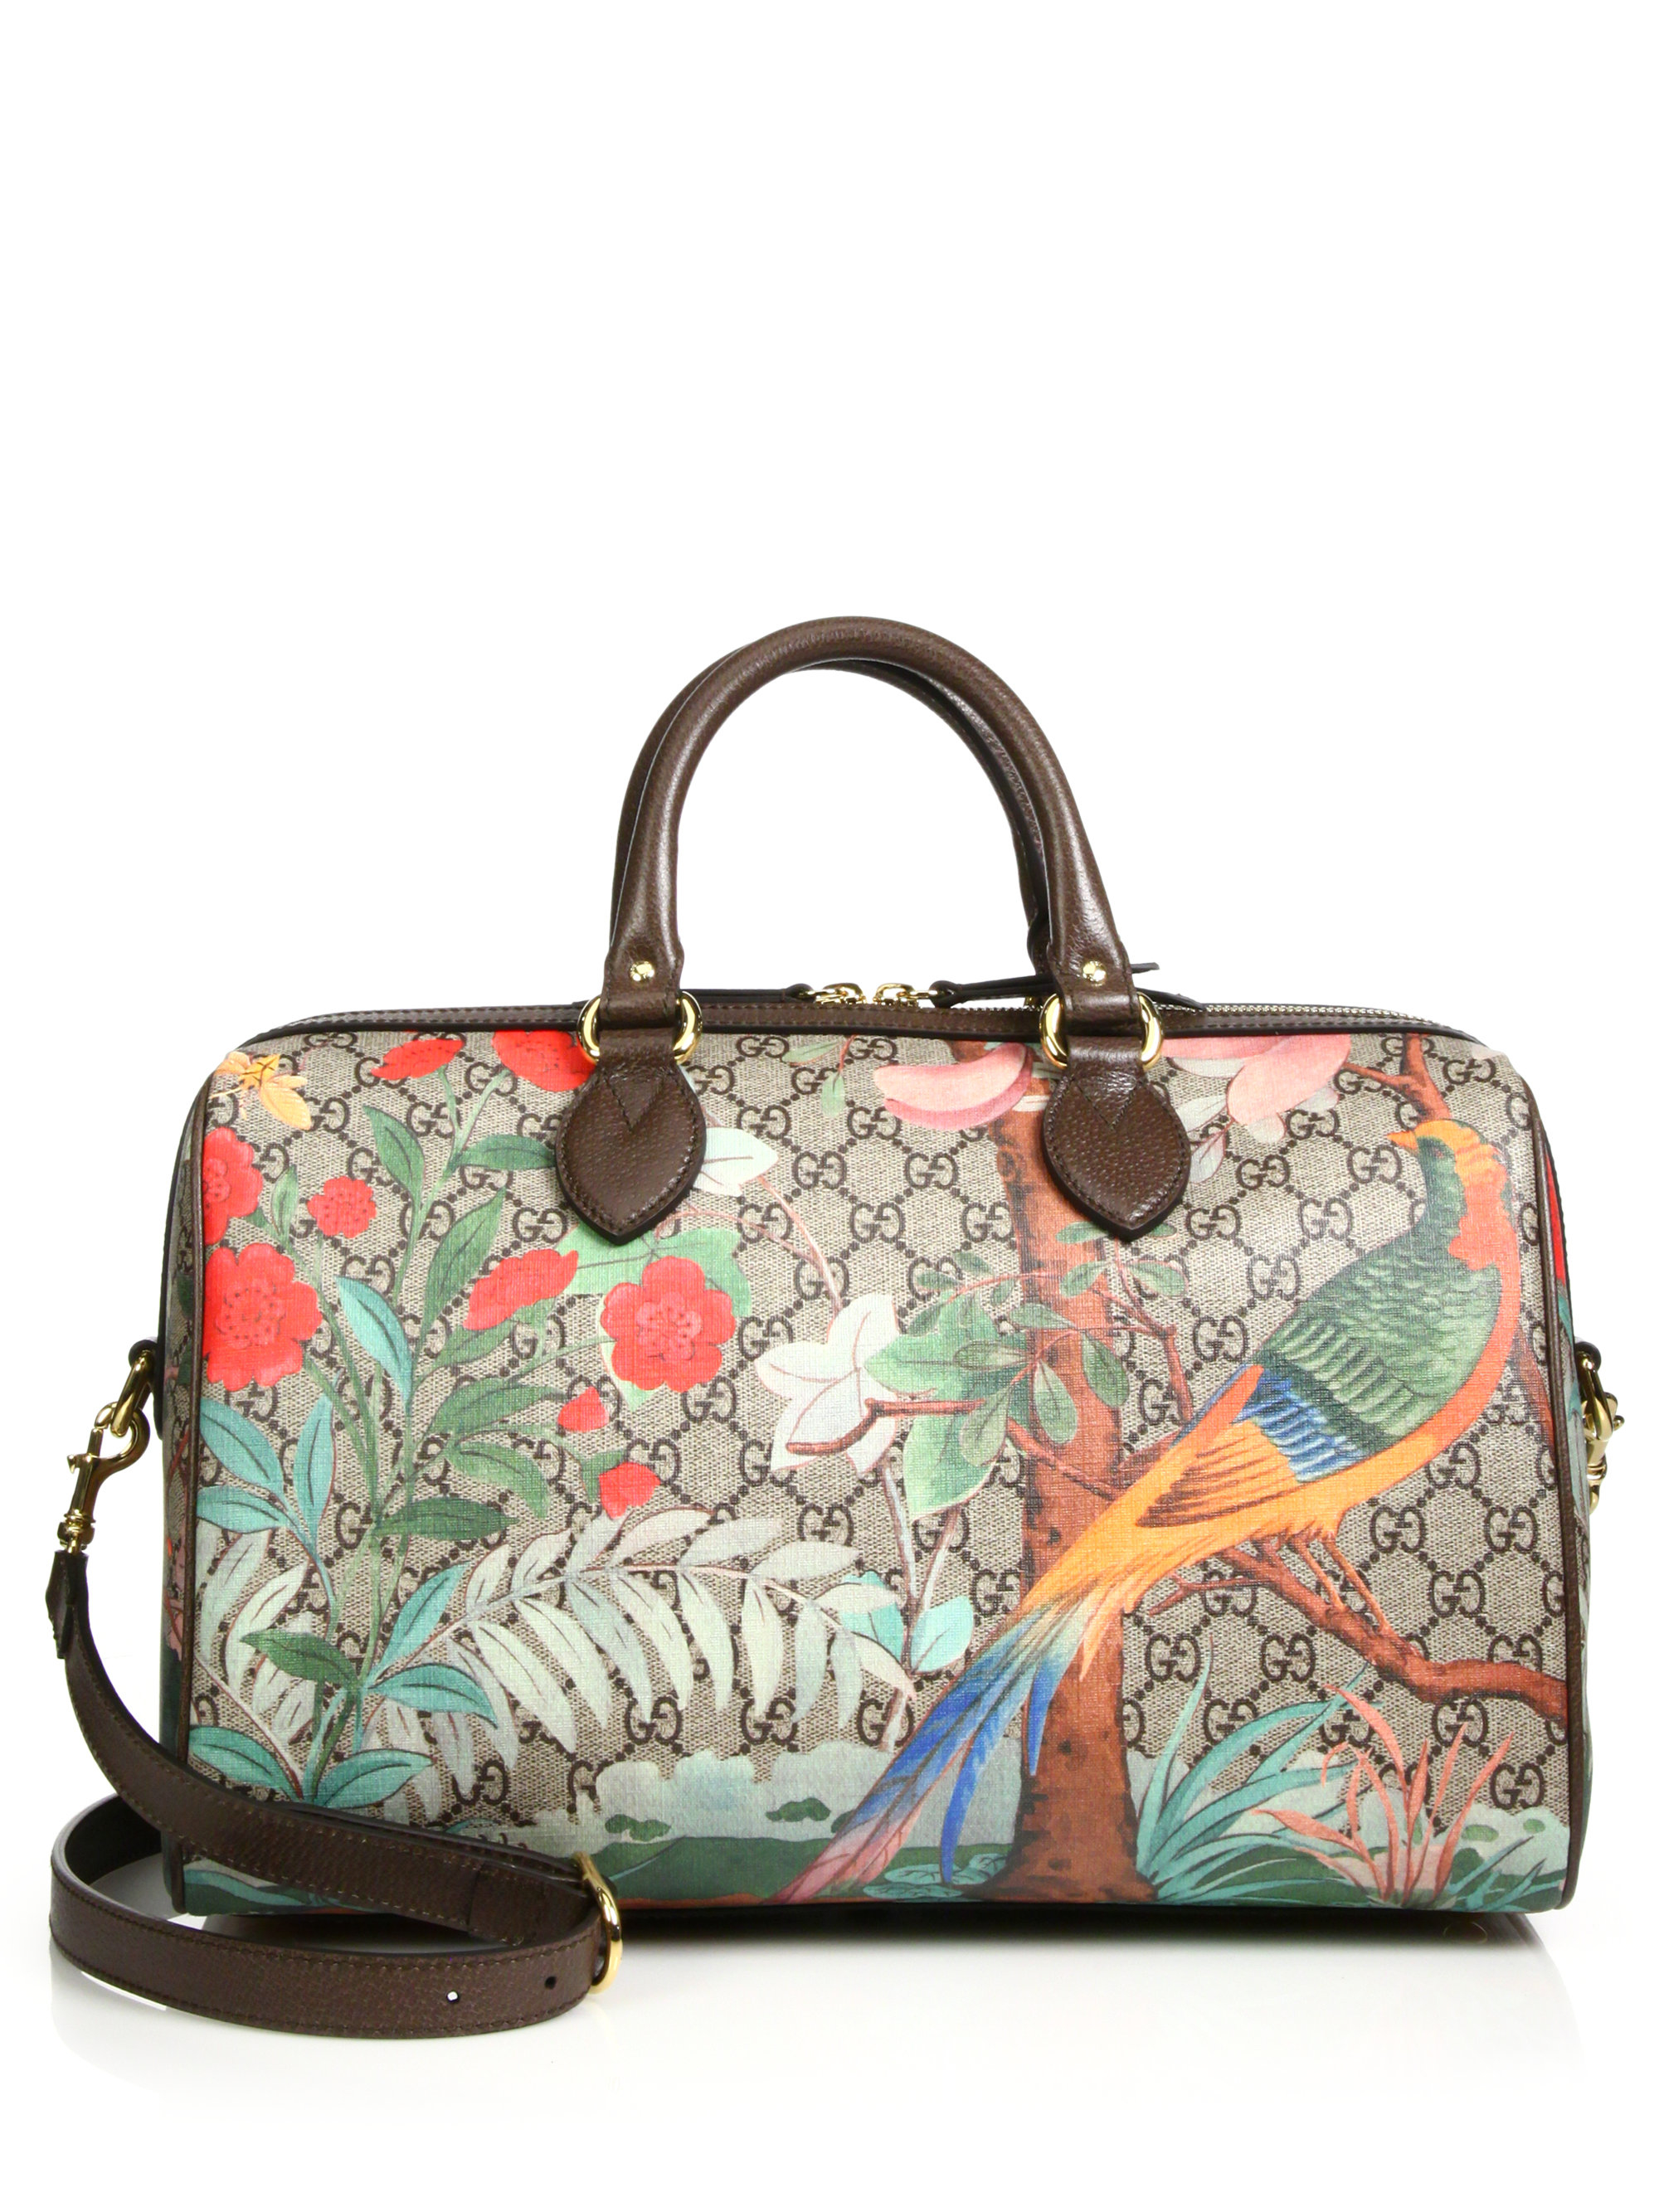 8a573545e51d6a Gucci Tian Gg Supreme Top-handle Boston Bag in Multicolor | Lyst